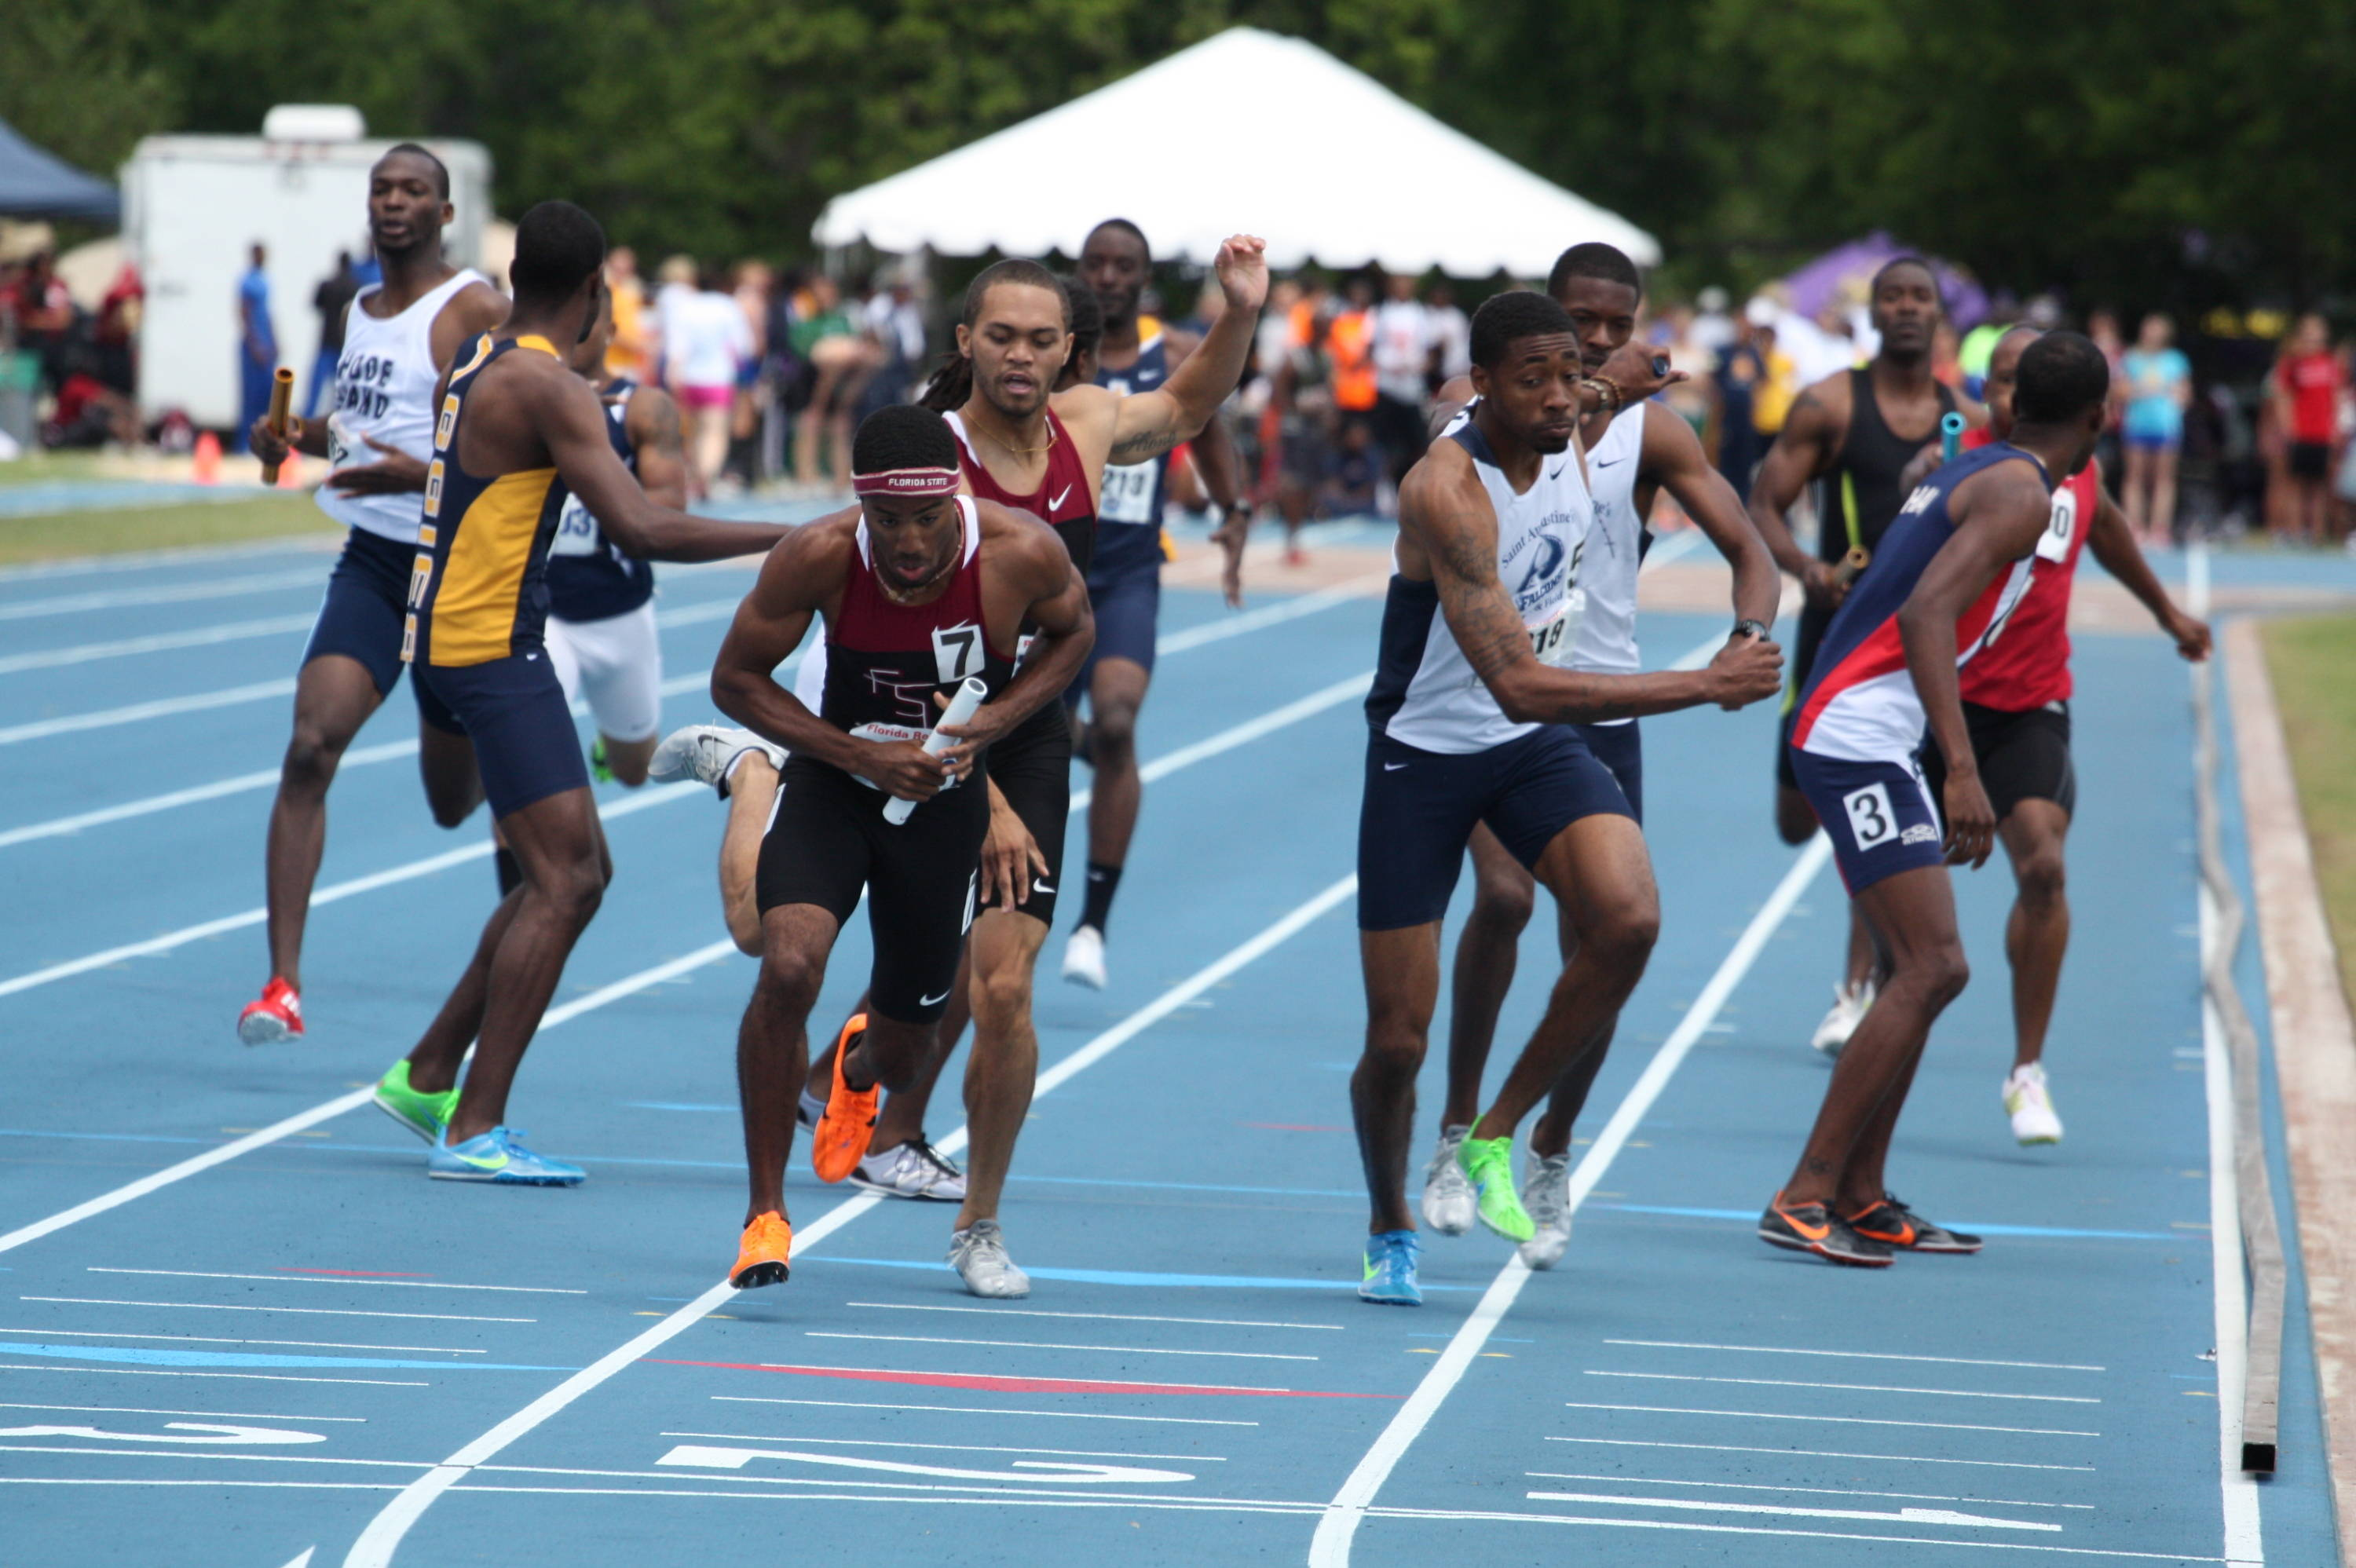 Darrin Gibson takes the baton from Ronald Bolden and prepares to cut inside after the final exchange in the sprint medley.